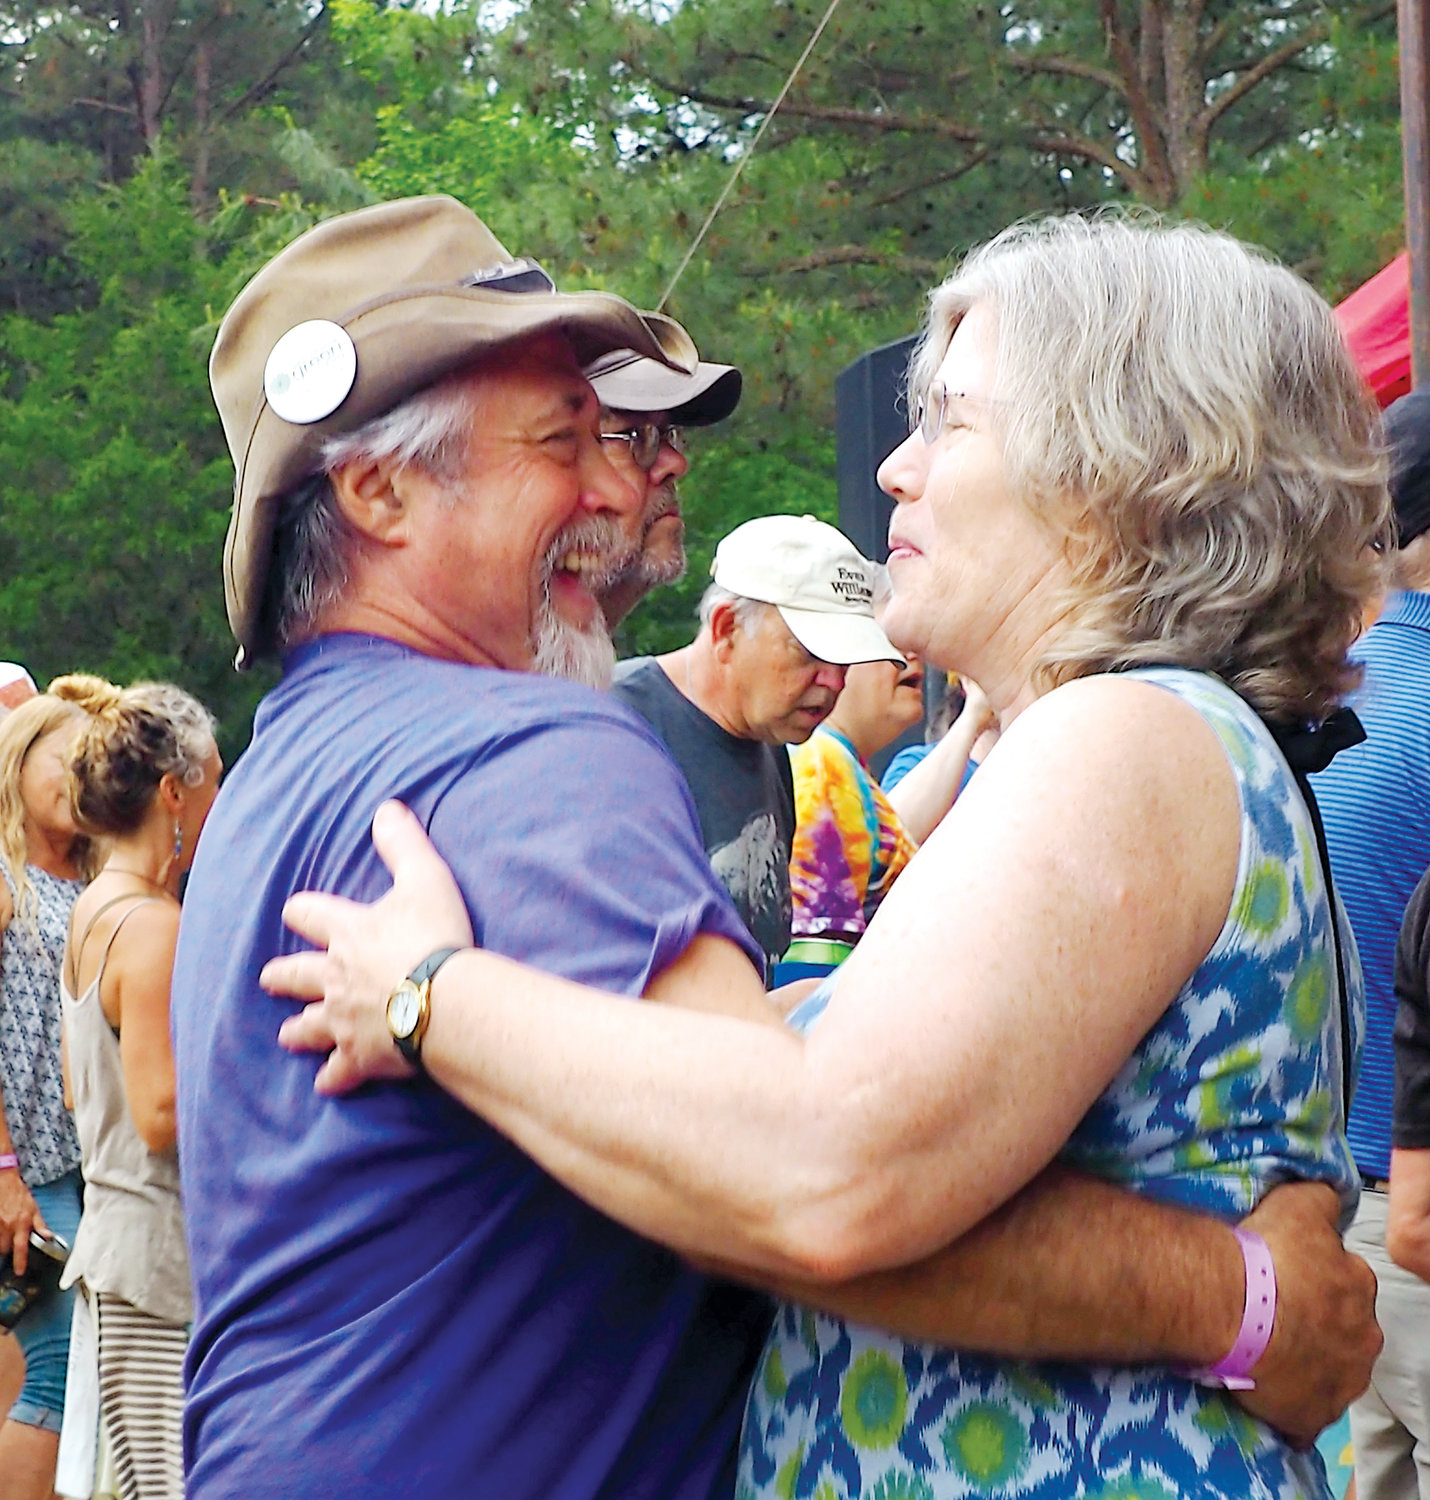 Pierre Lauffer and Cindy Shea of Pittsboro dance to tunes, enjoying the afternoon at Shakori.